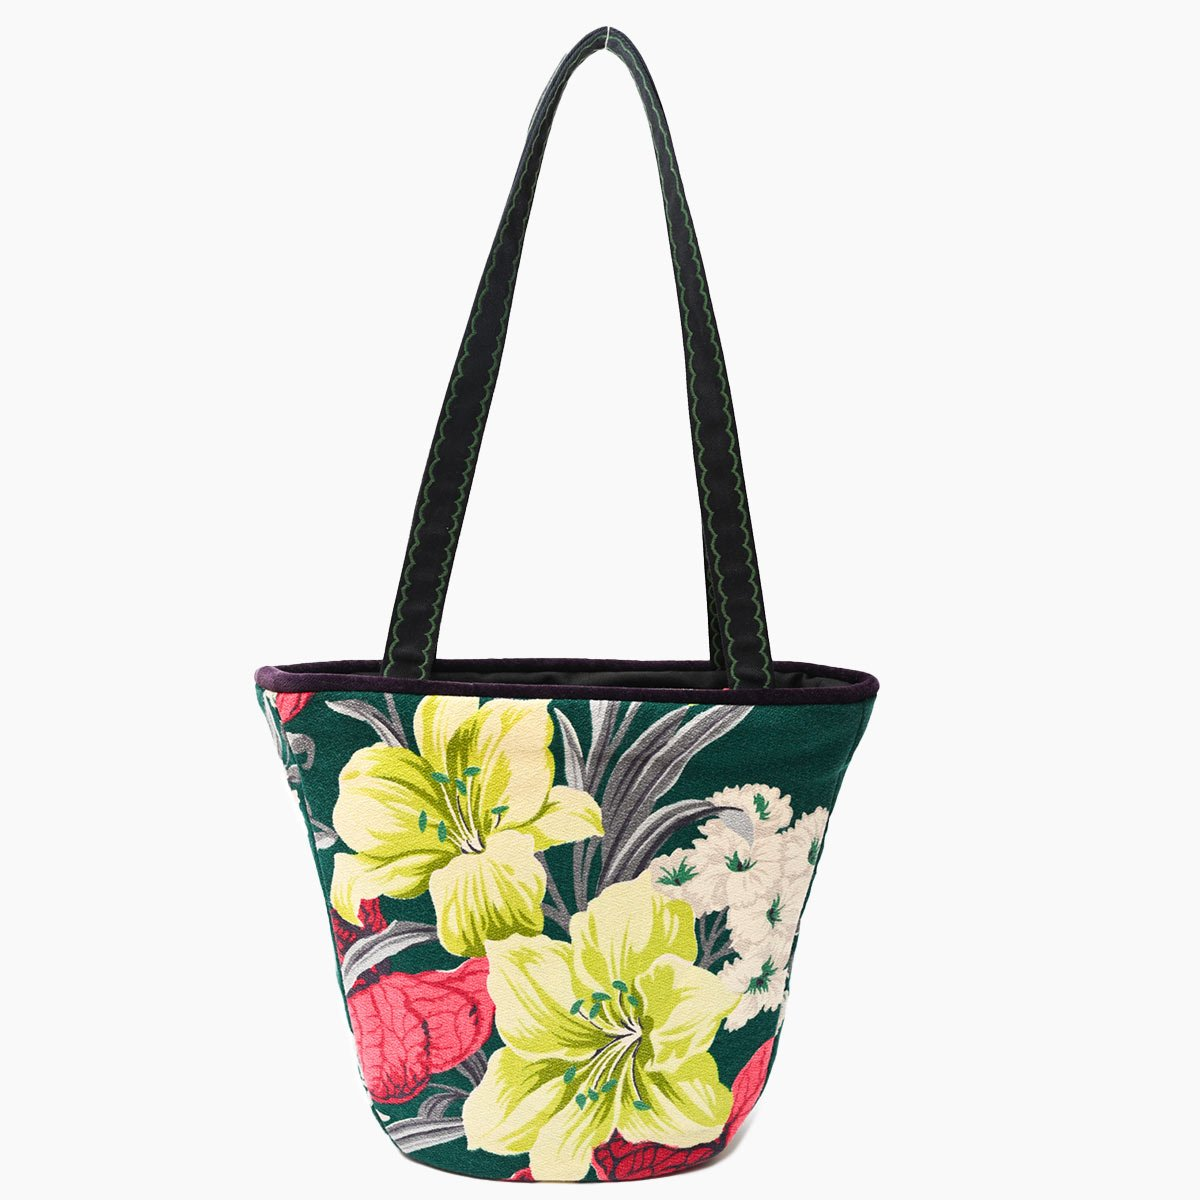 tiki bag hibiscus motif on green